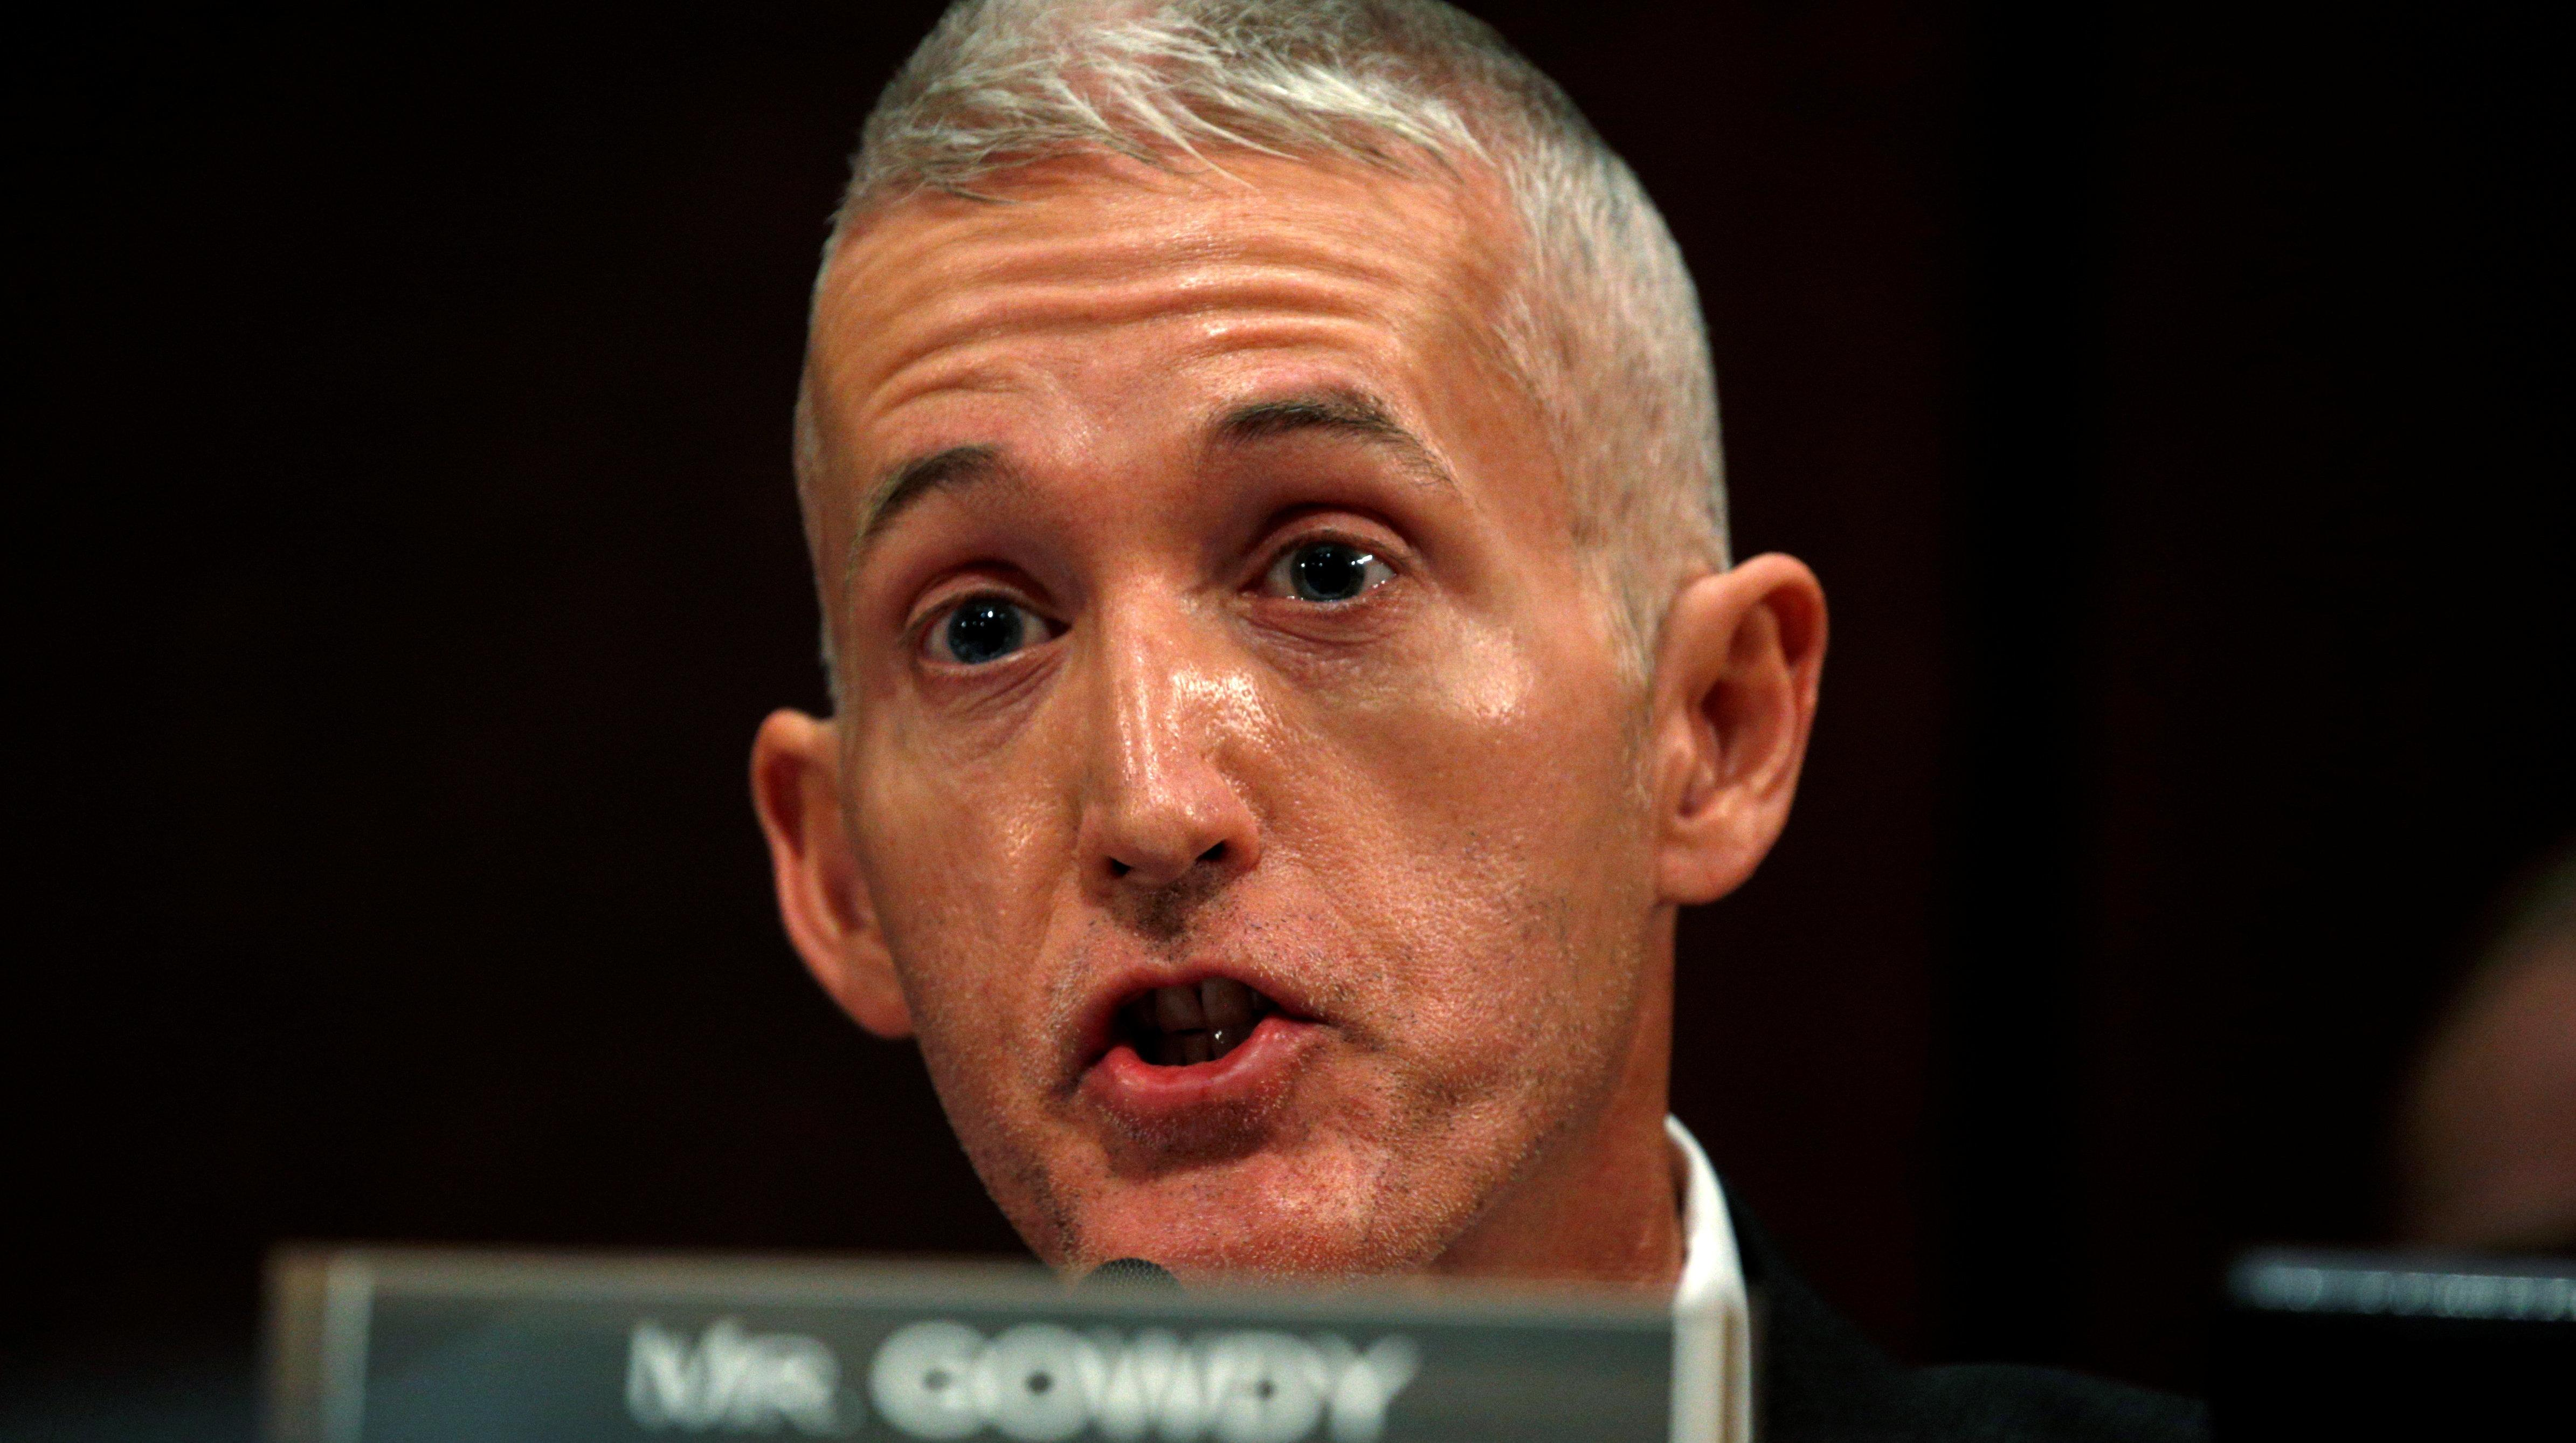 GOP Rep. Trey Gowdy Contradicts Trump On 'Informant' Claim